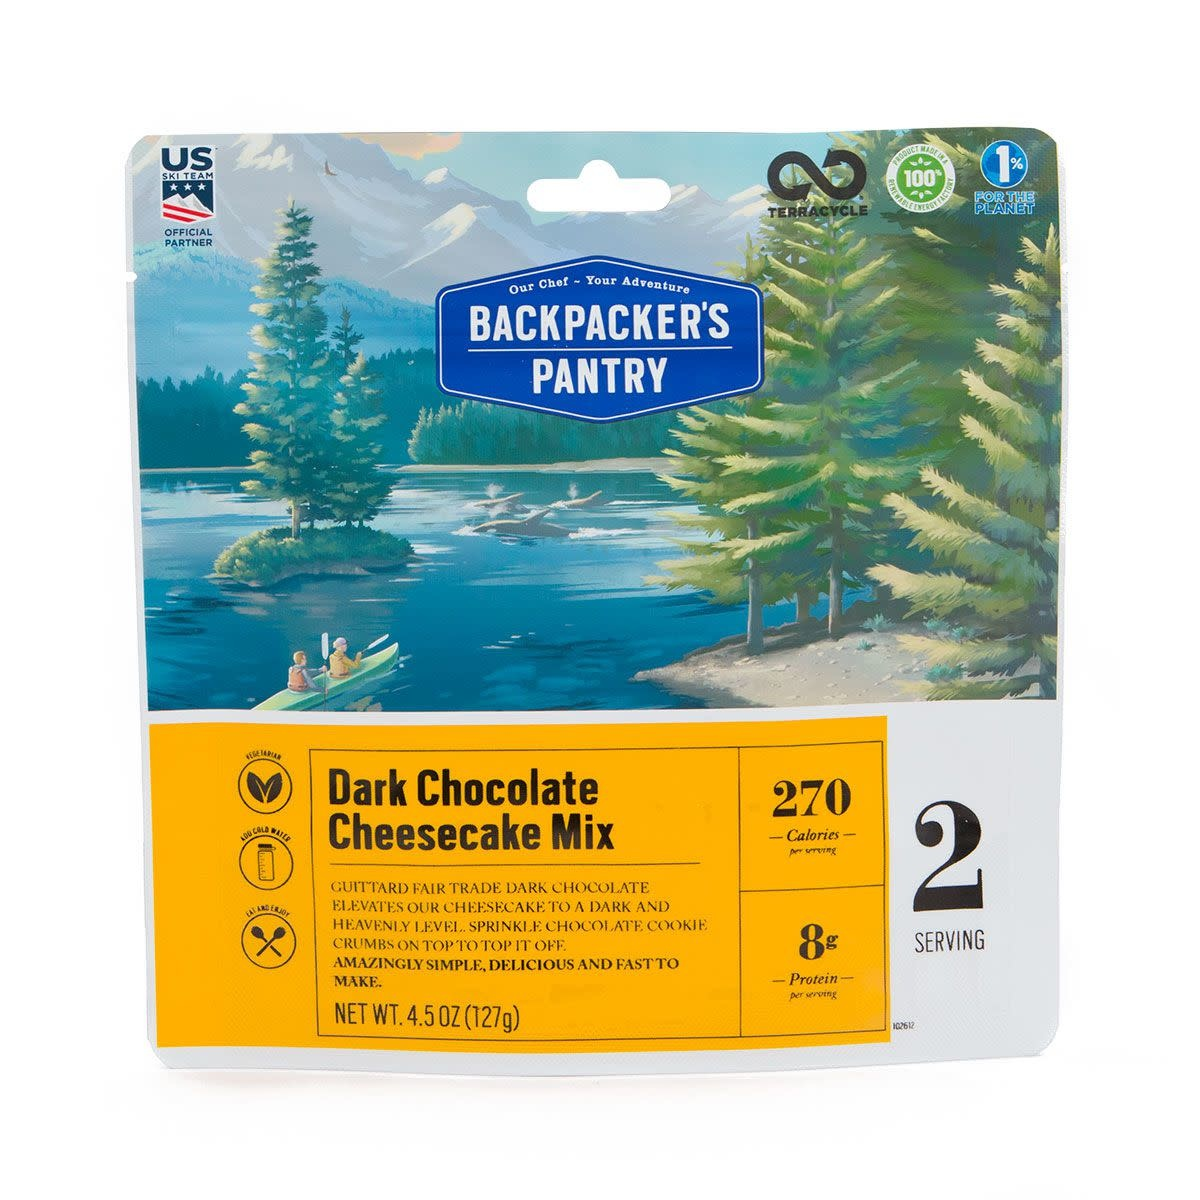 BACKPACKERS PANTRY Backpacker's Pantry Dark Chocolate Cheesecake Mix